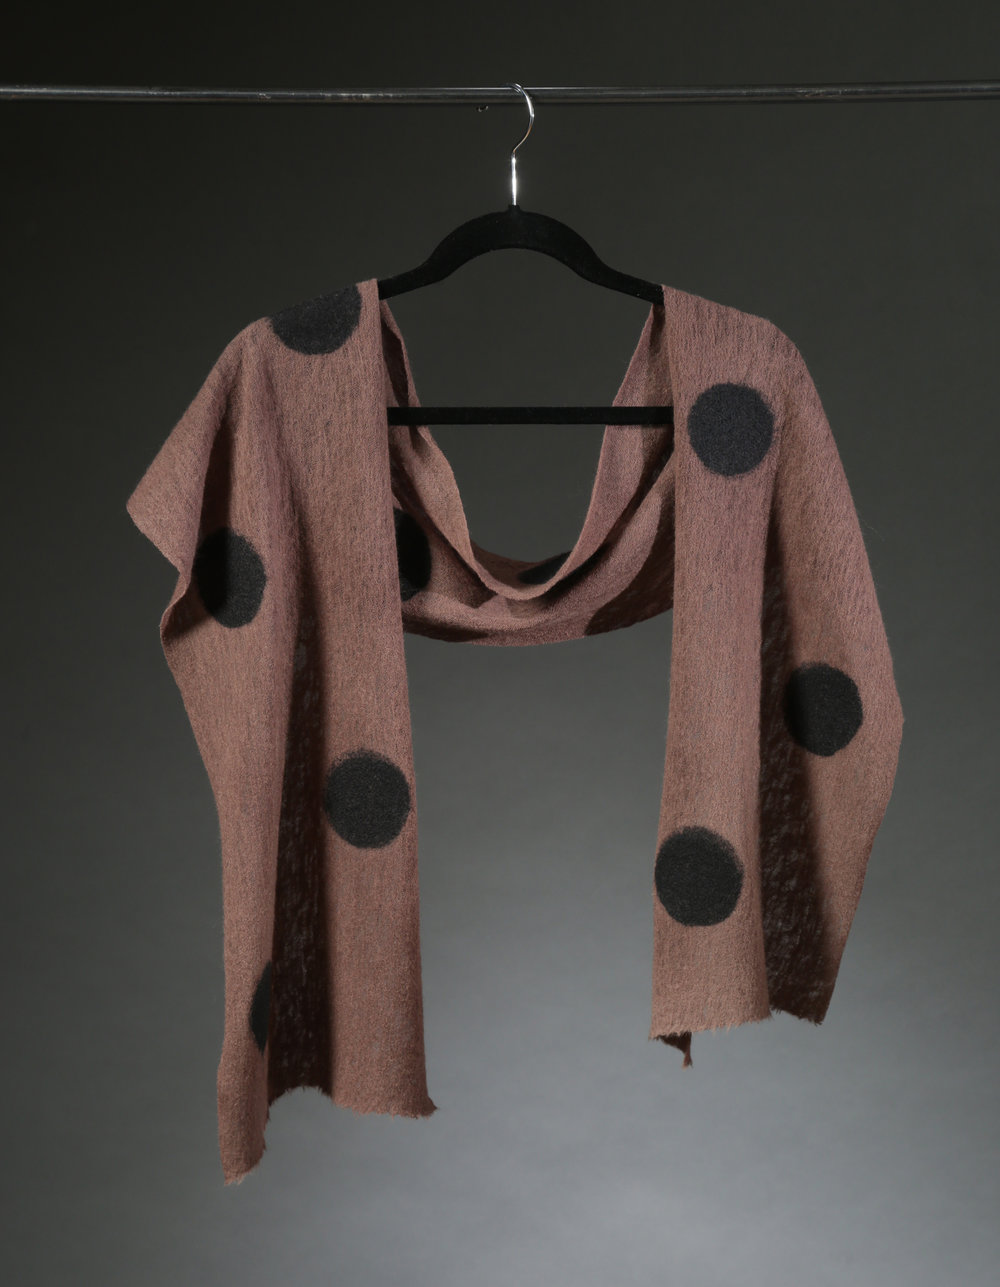 """Wool Knit Dot Scarf 1"", Textile, 66"" x 11"", $175"